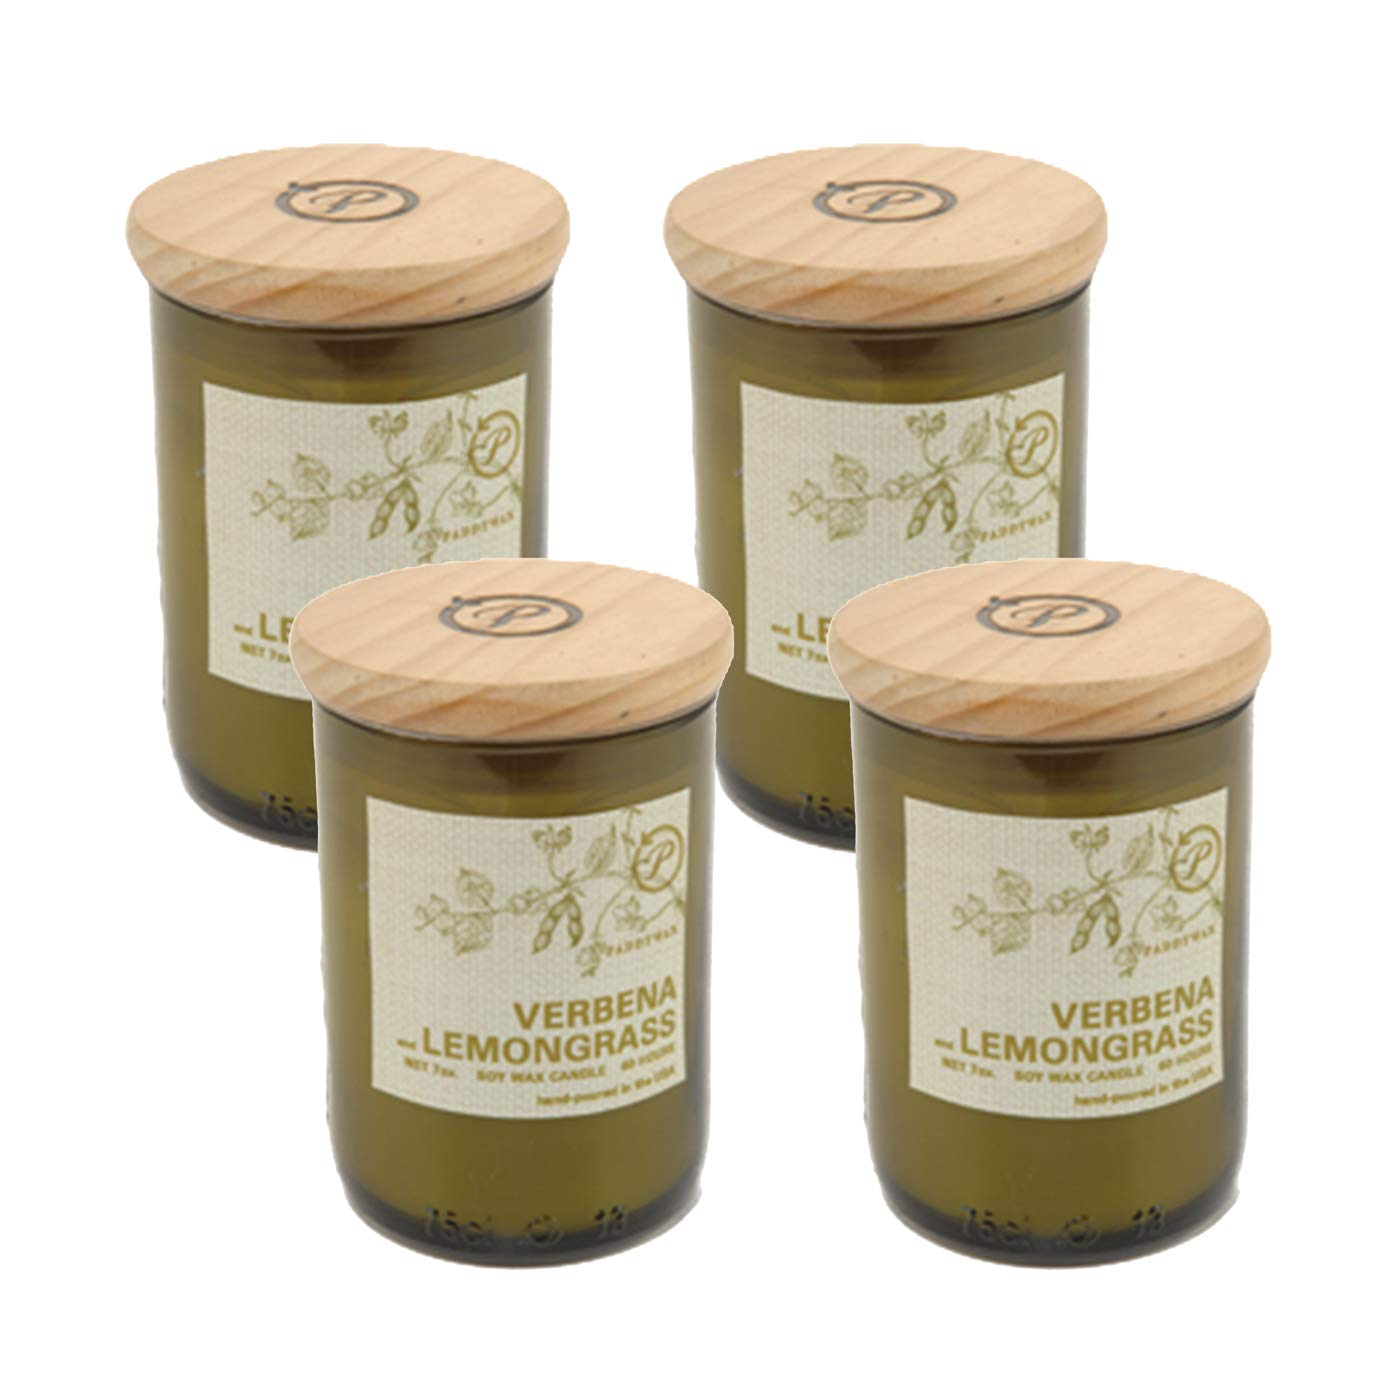 Paddywax Eco Green Recycled Glass Candle, 8-Ounce, Verbena & Lemongrass - Set of 4